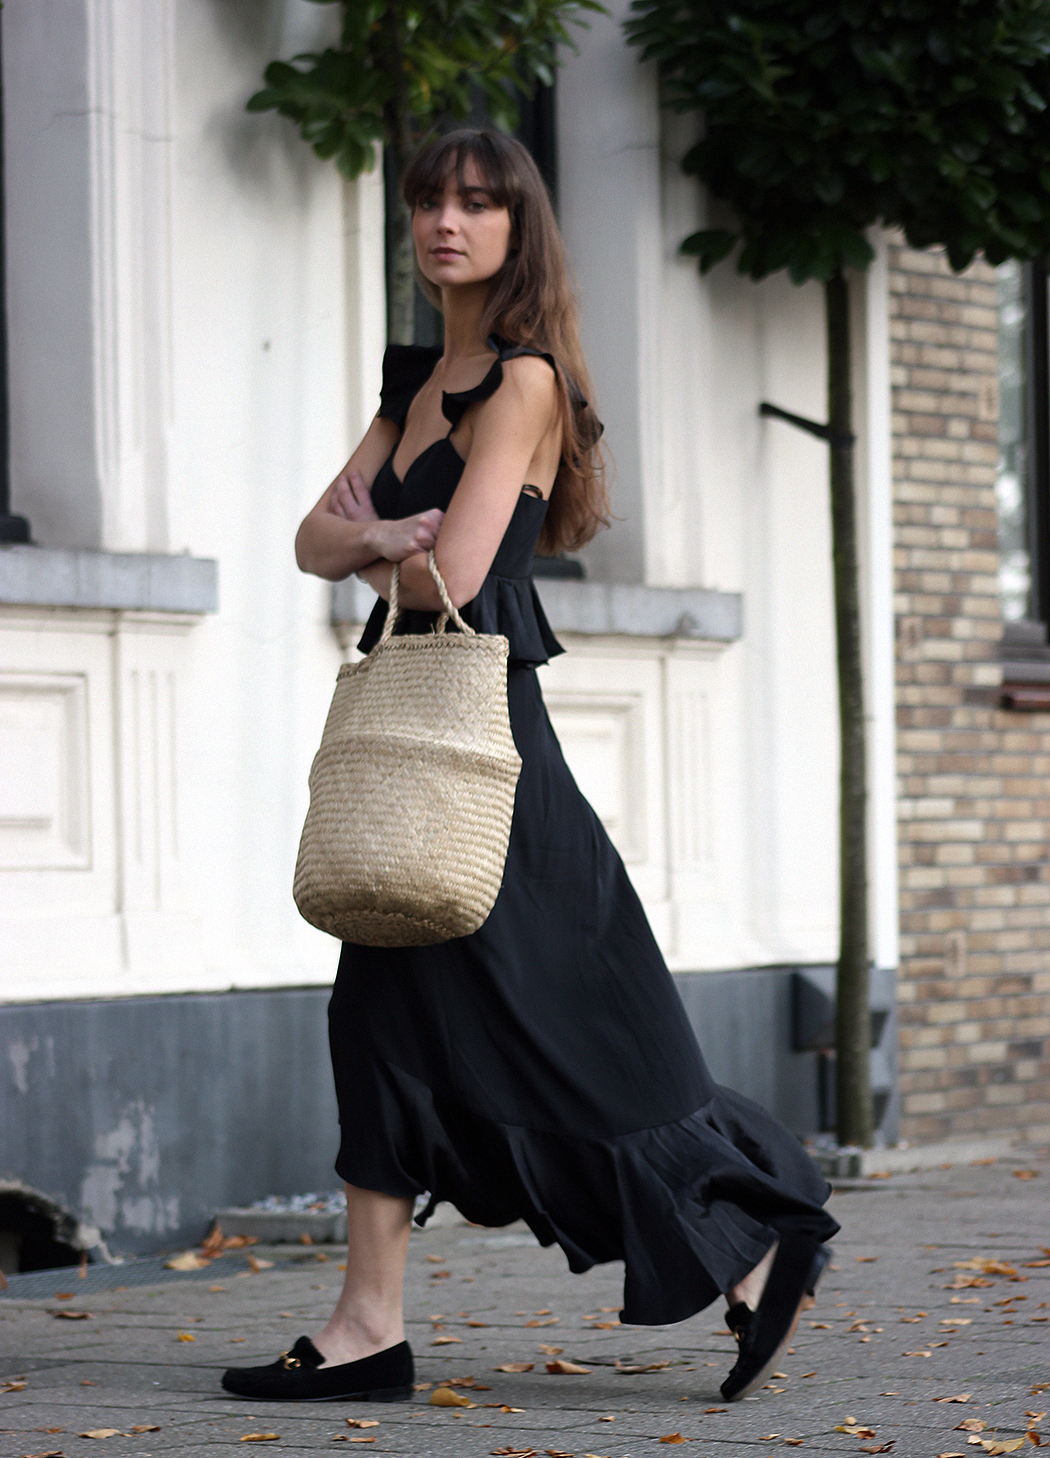 Amur Blake Silk Midi Dress - Gucci Loafer - Modedamour 3.png